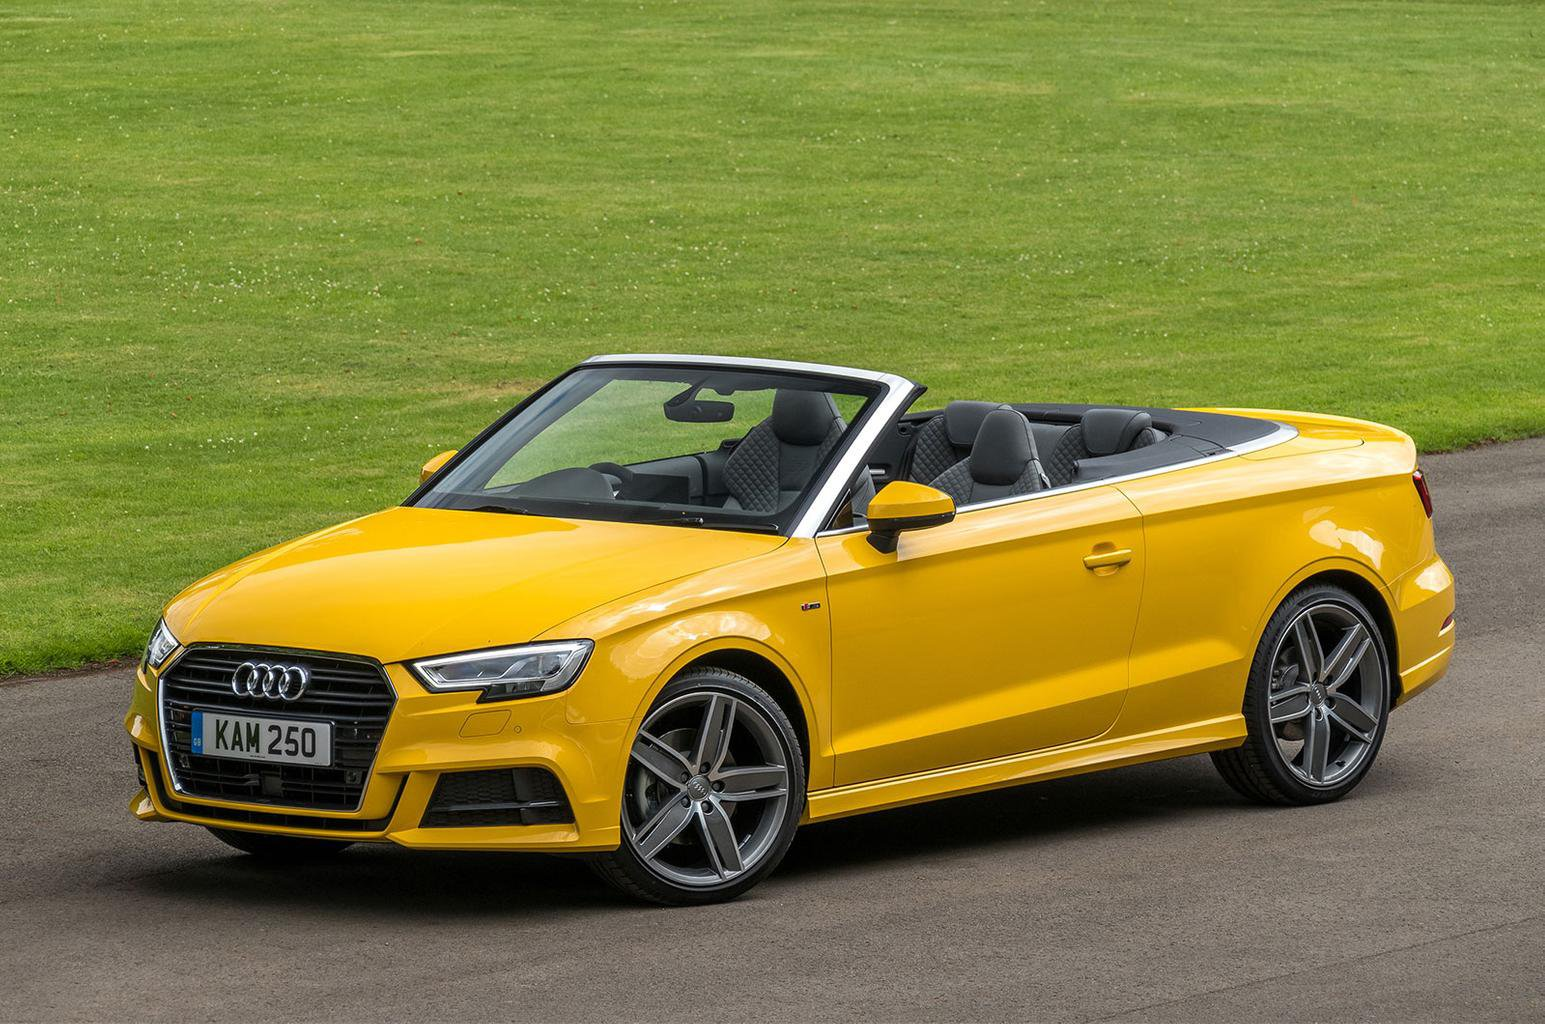 Audi's A3 Cabriolet